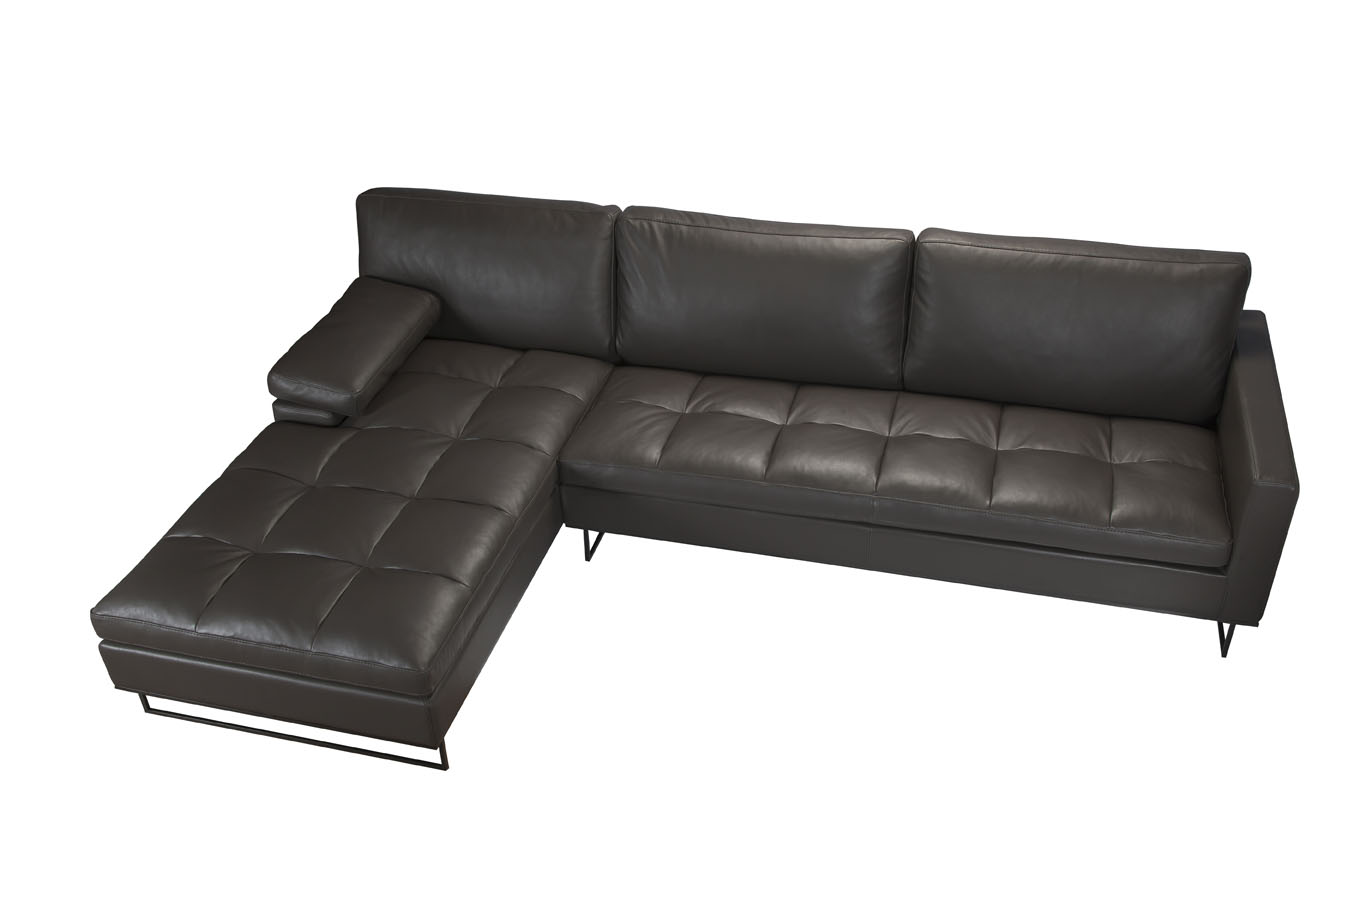 Couches For Sale Brisbane Saint Clair L Shaped Sofa Quilted Seat Chaise Domo